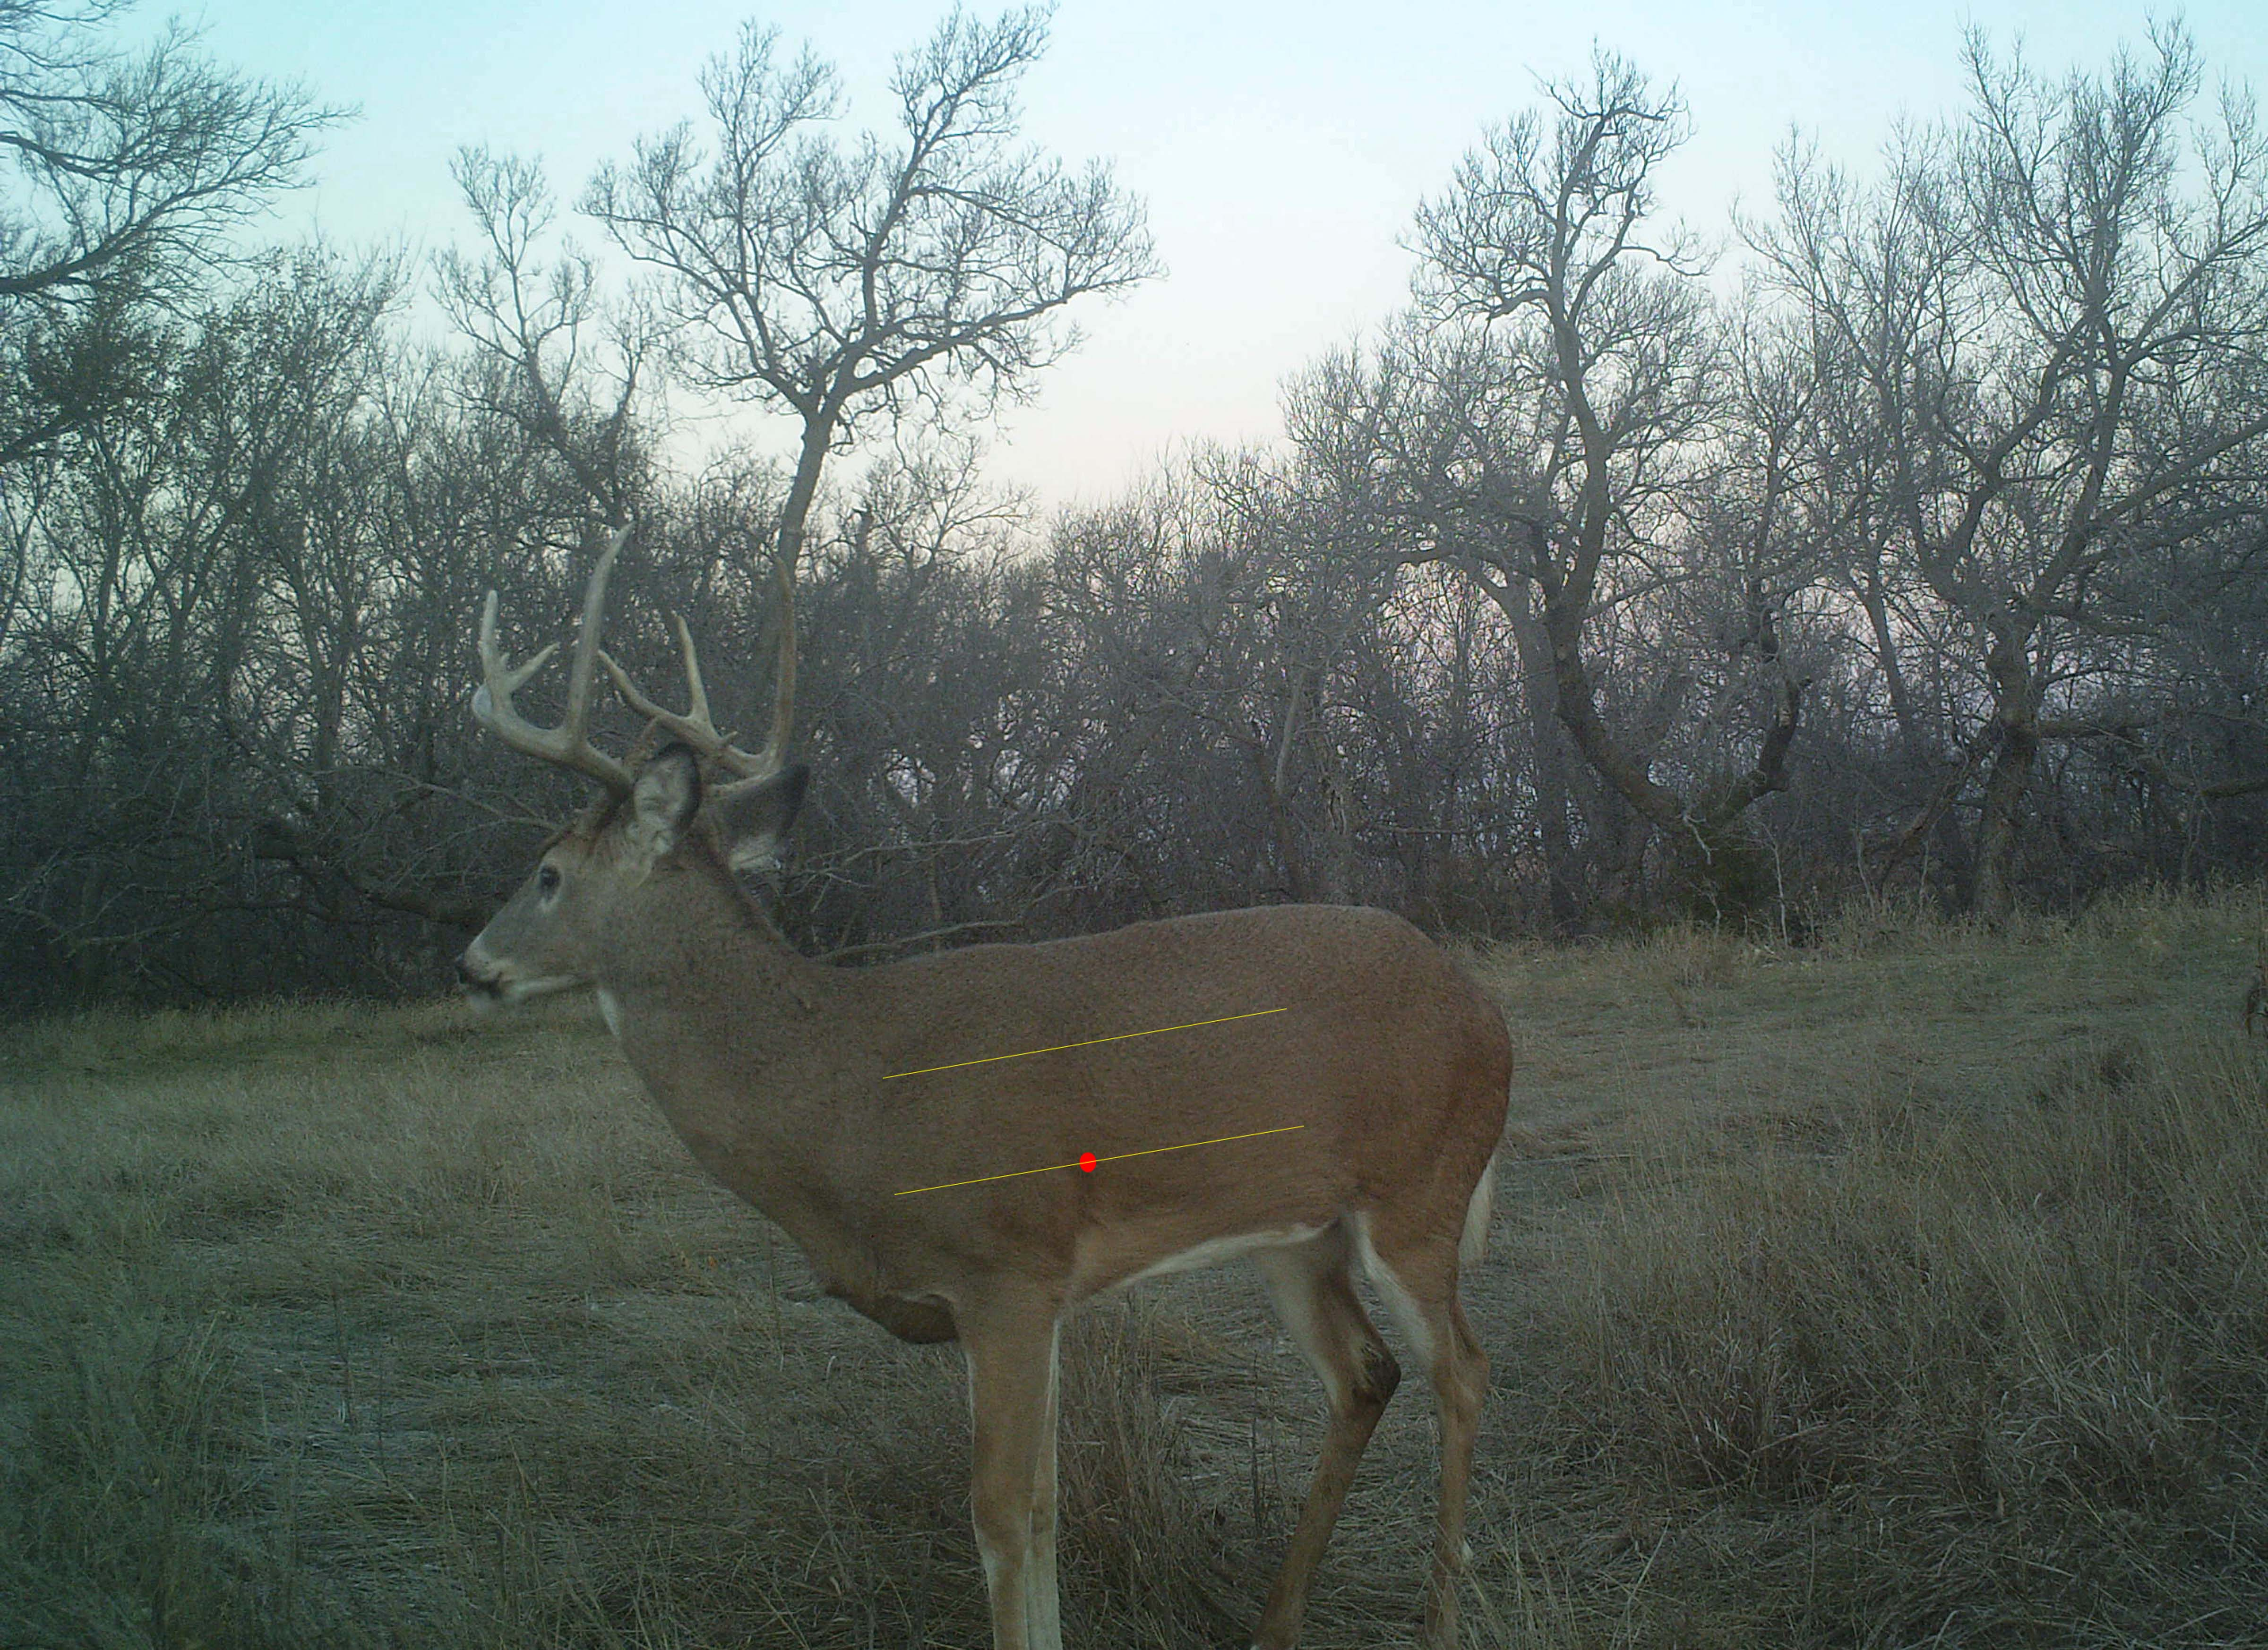 A quartering-toward shot angle occurs when a deer slightly faces the bowhunter but is not head-on. If the angle is extremely slight, an ethical shot is possible. Photo Credit: Tyler Ridenour